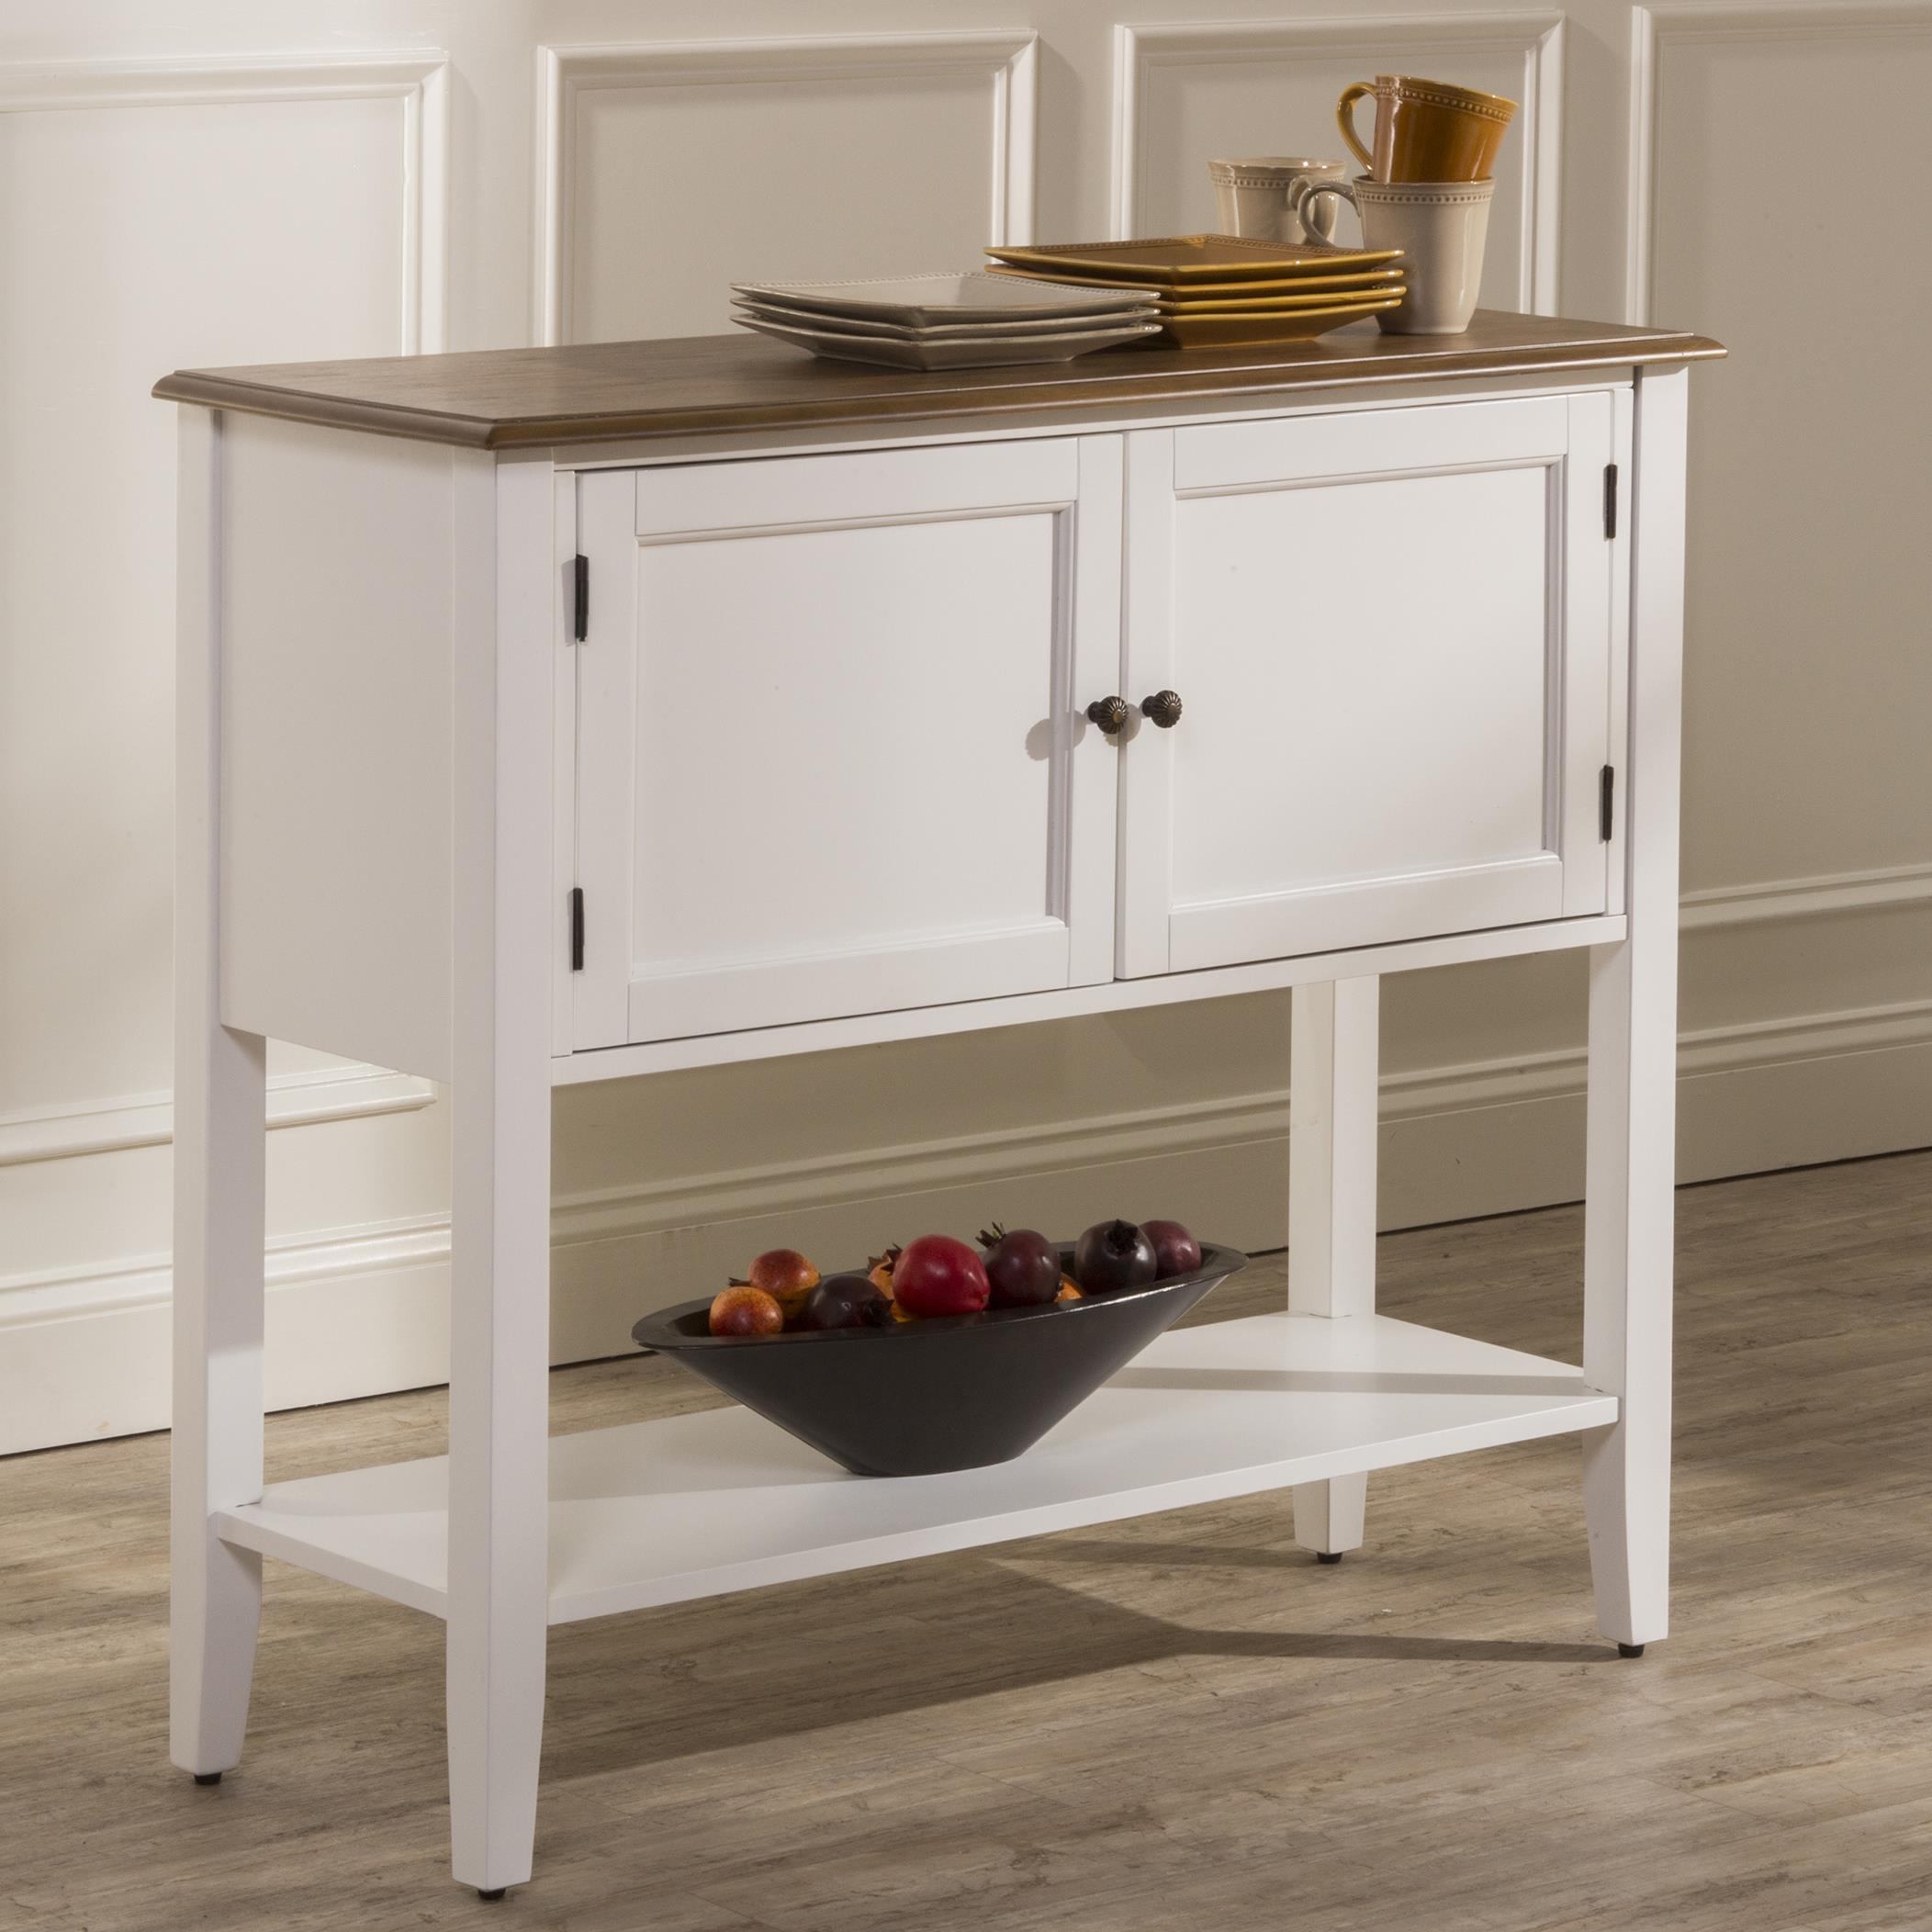 Hillsdale Bayberry White Dining Server - Item Number: 5791-850